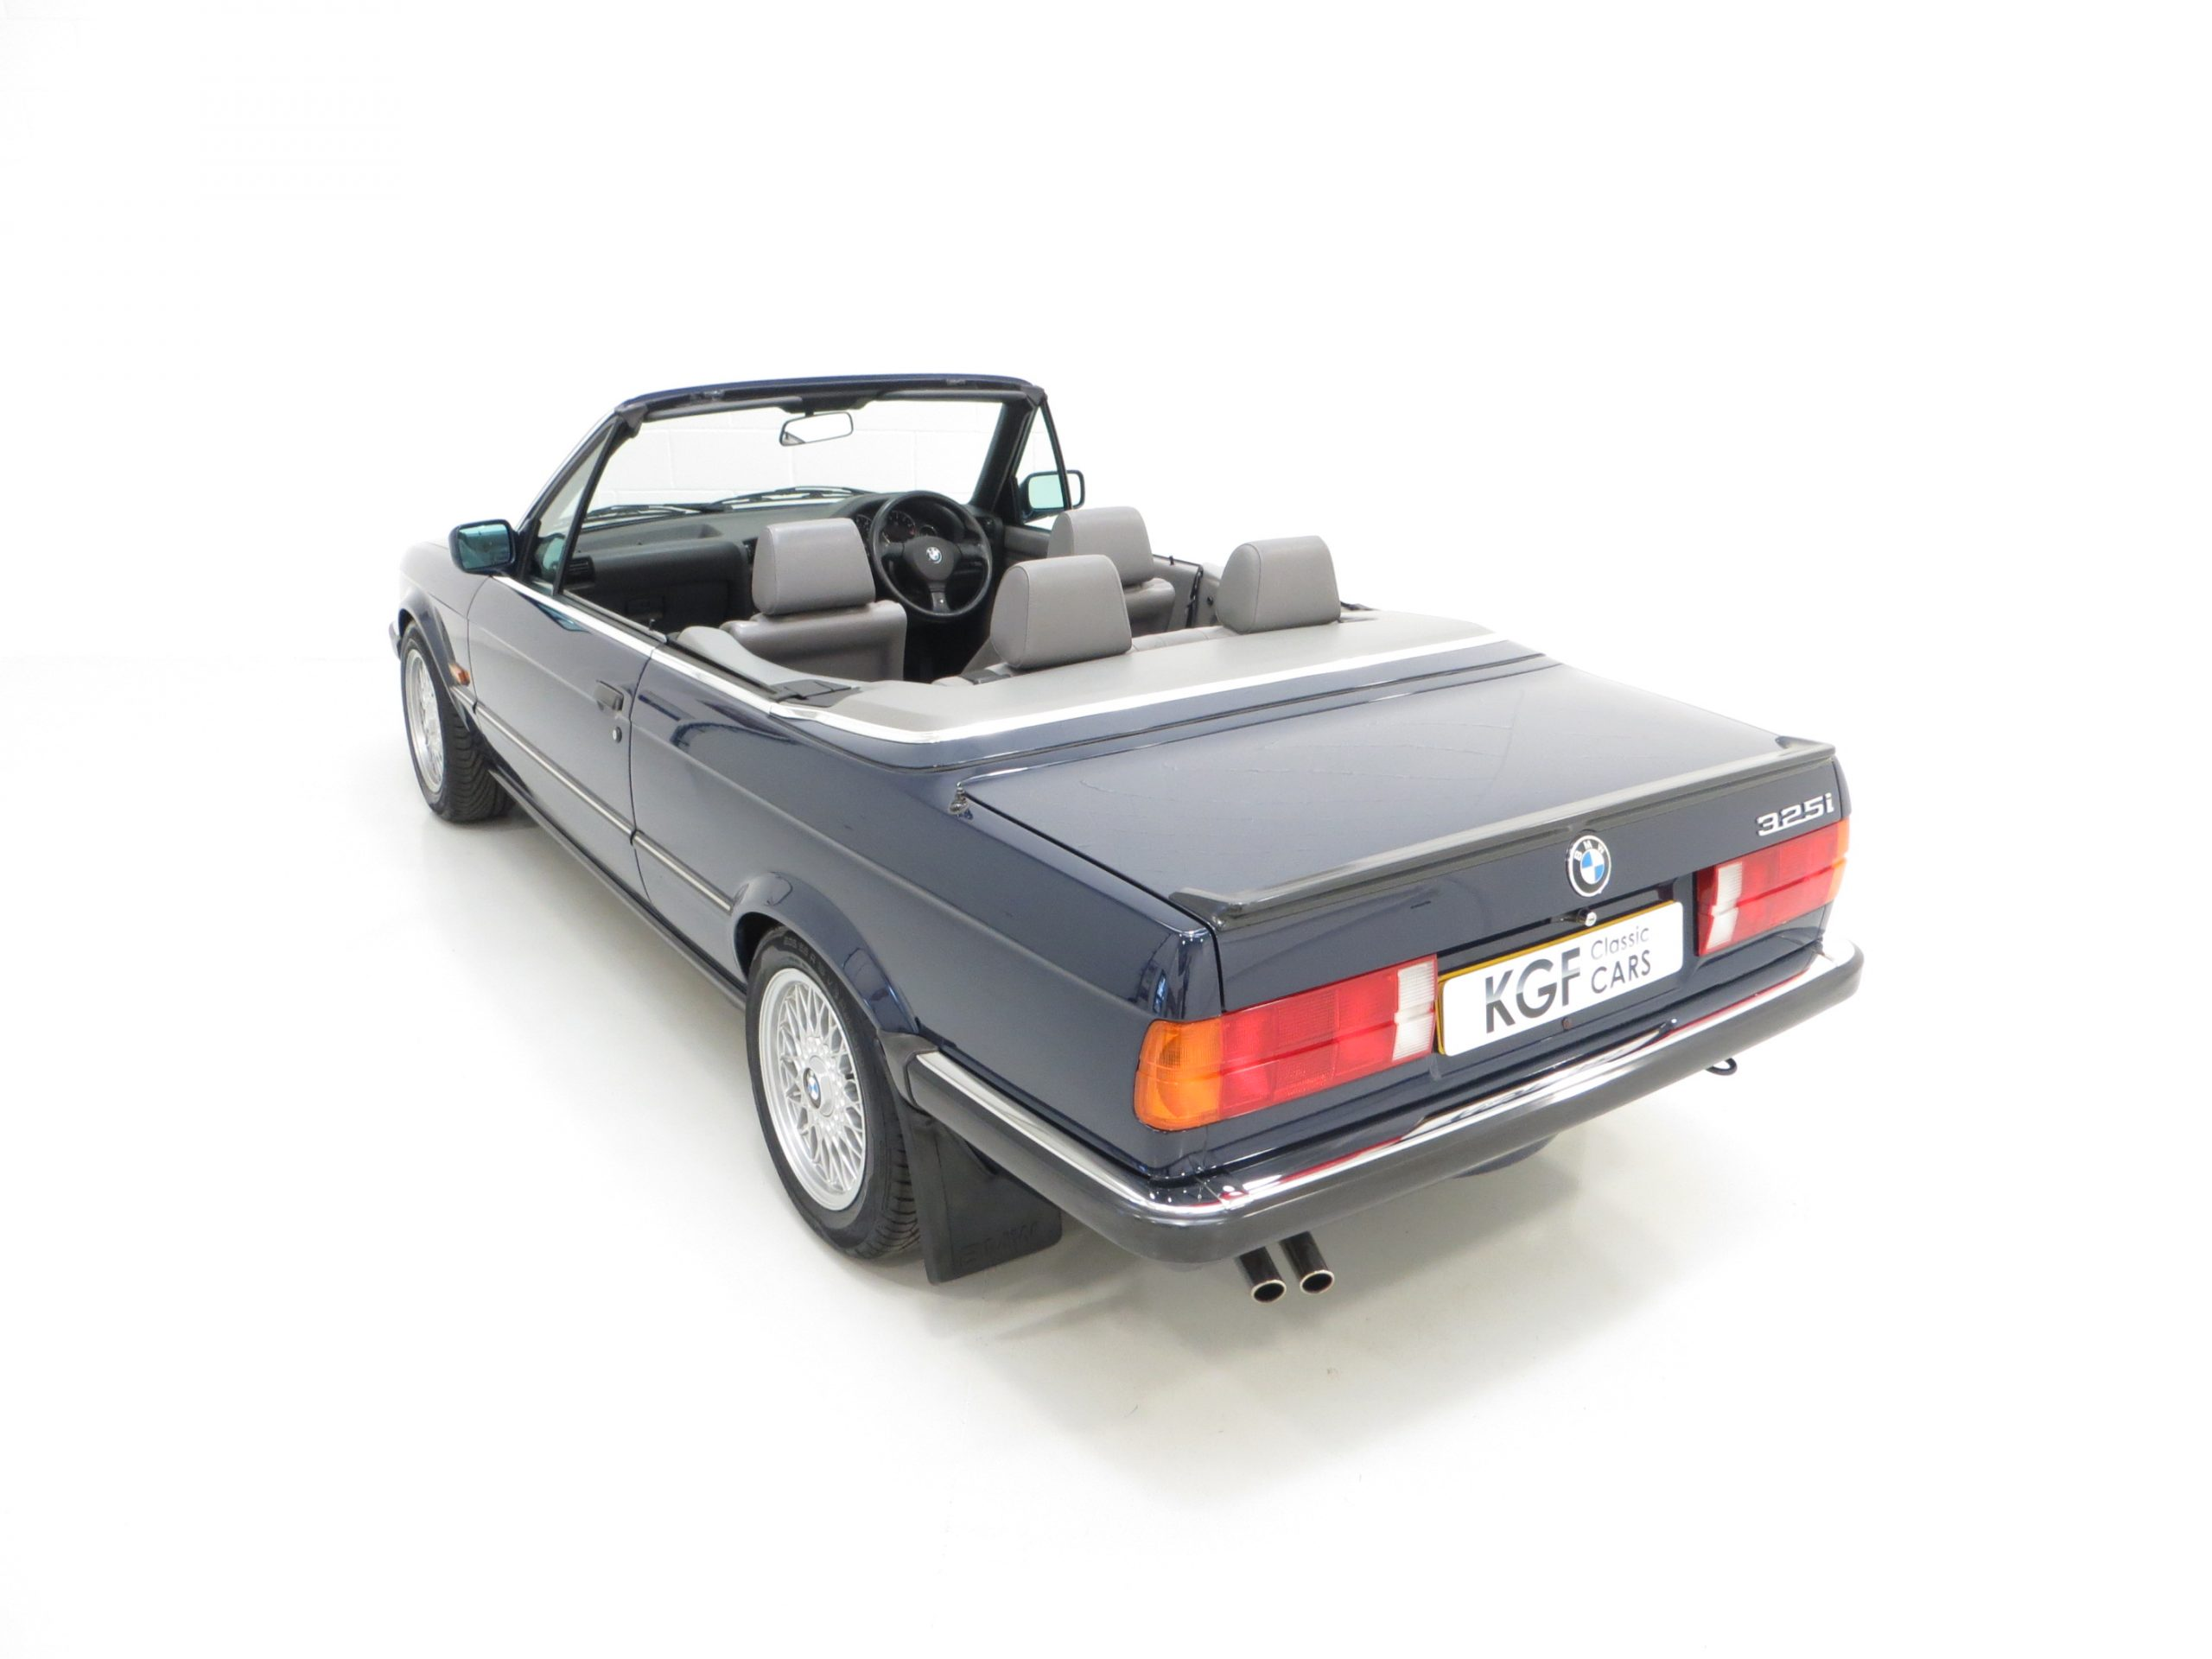 Bmw E30 325i Convertible Kgf